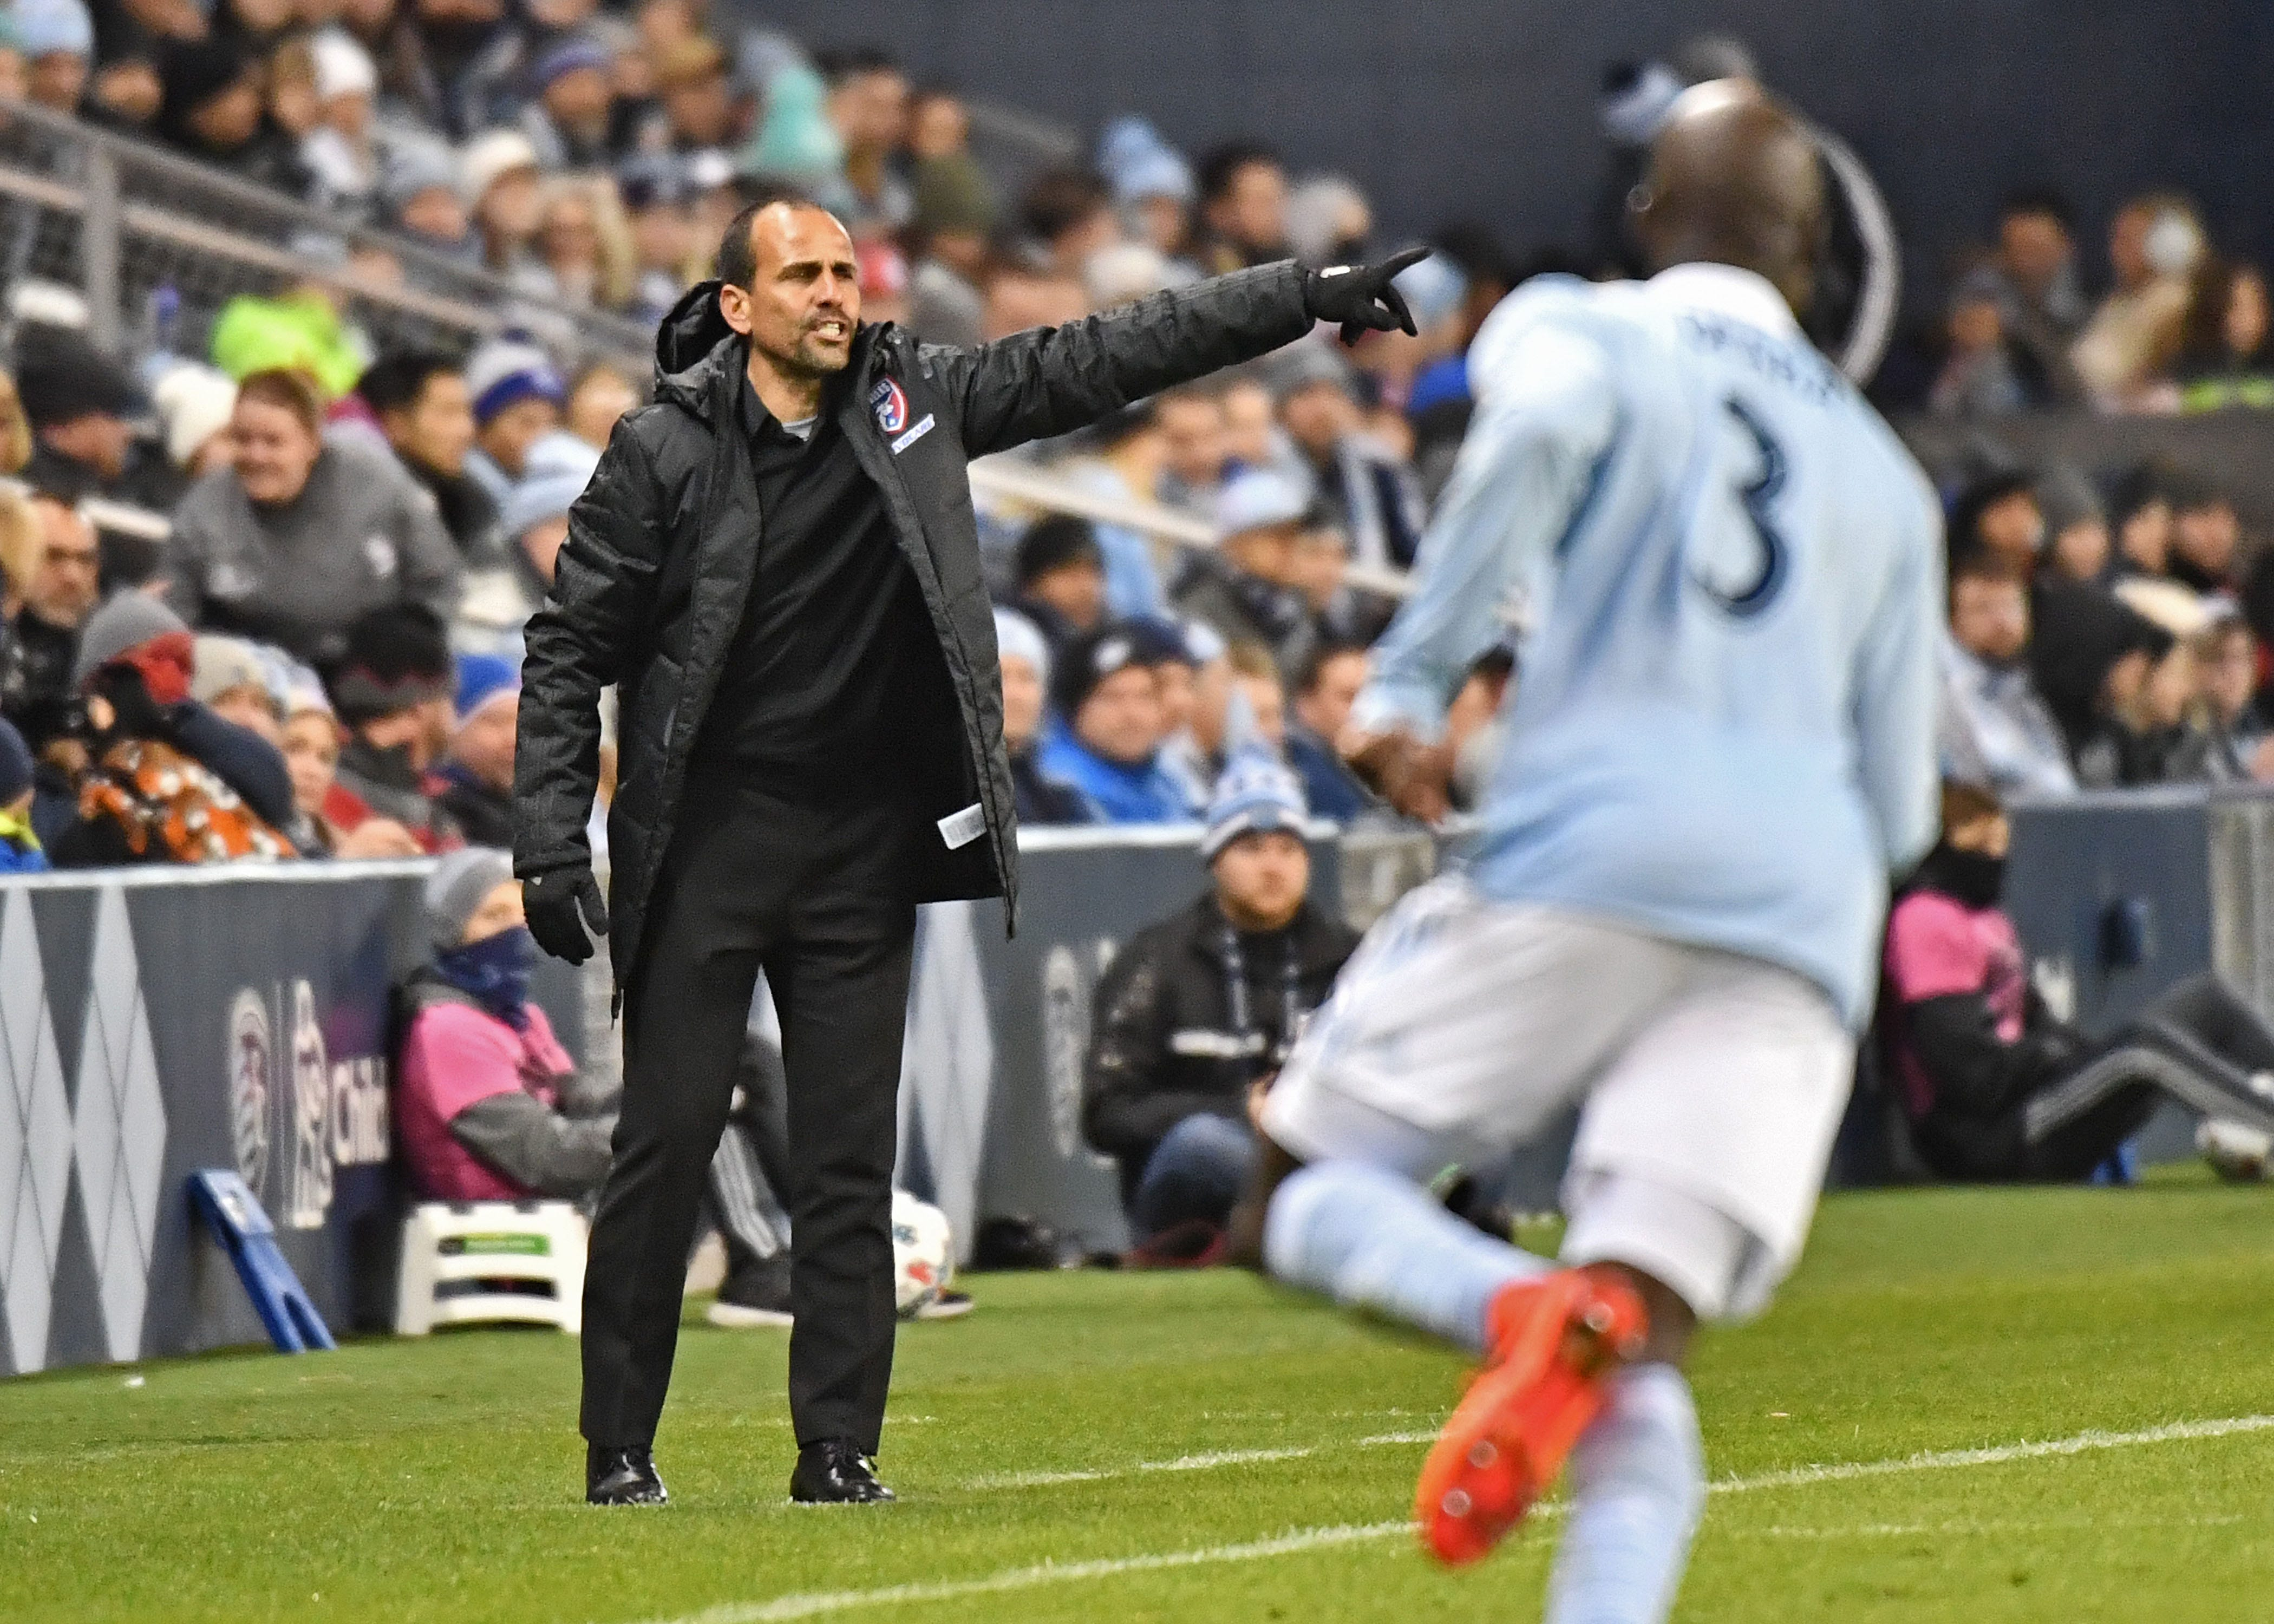 FC Dallas agrees to long-term deal with coach Oscar Pareja